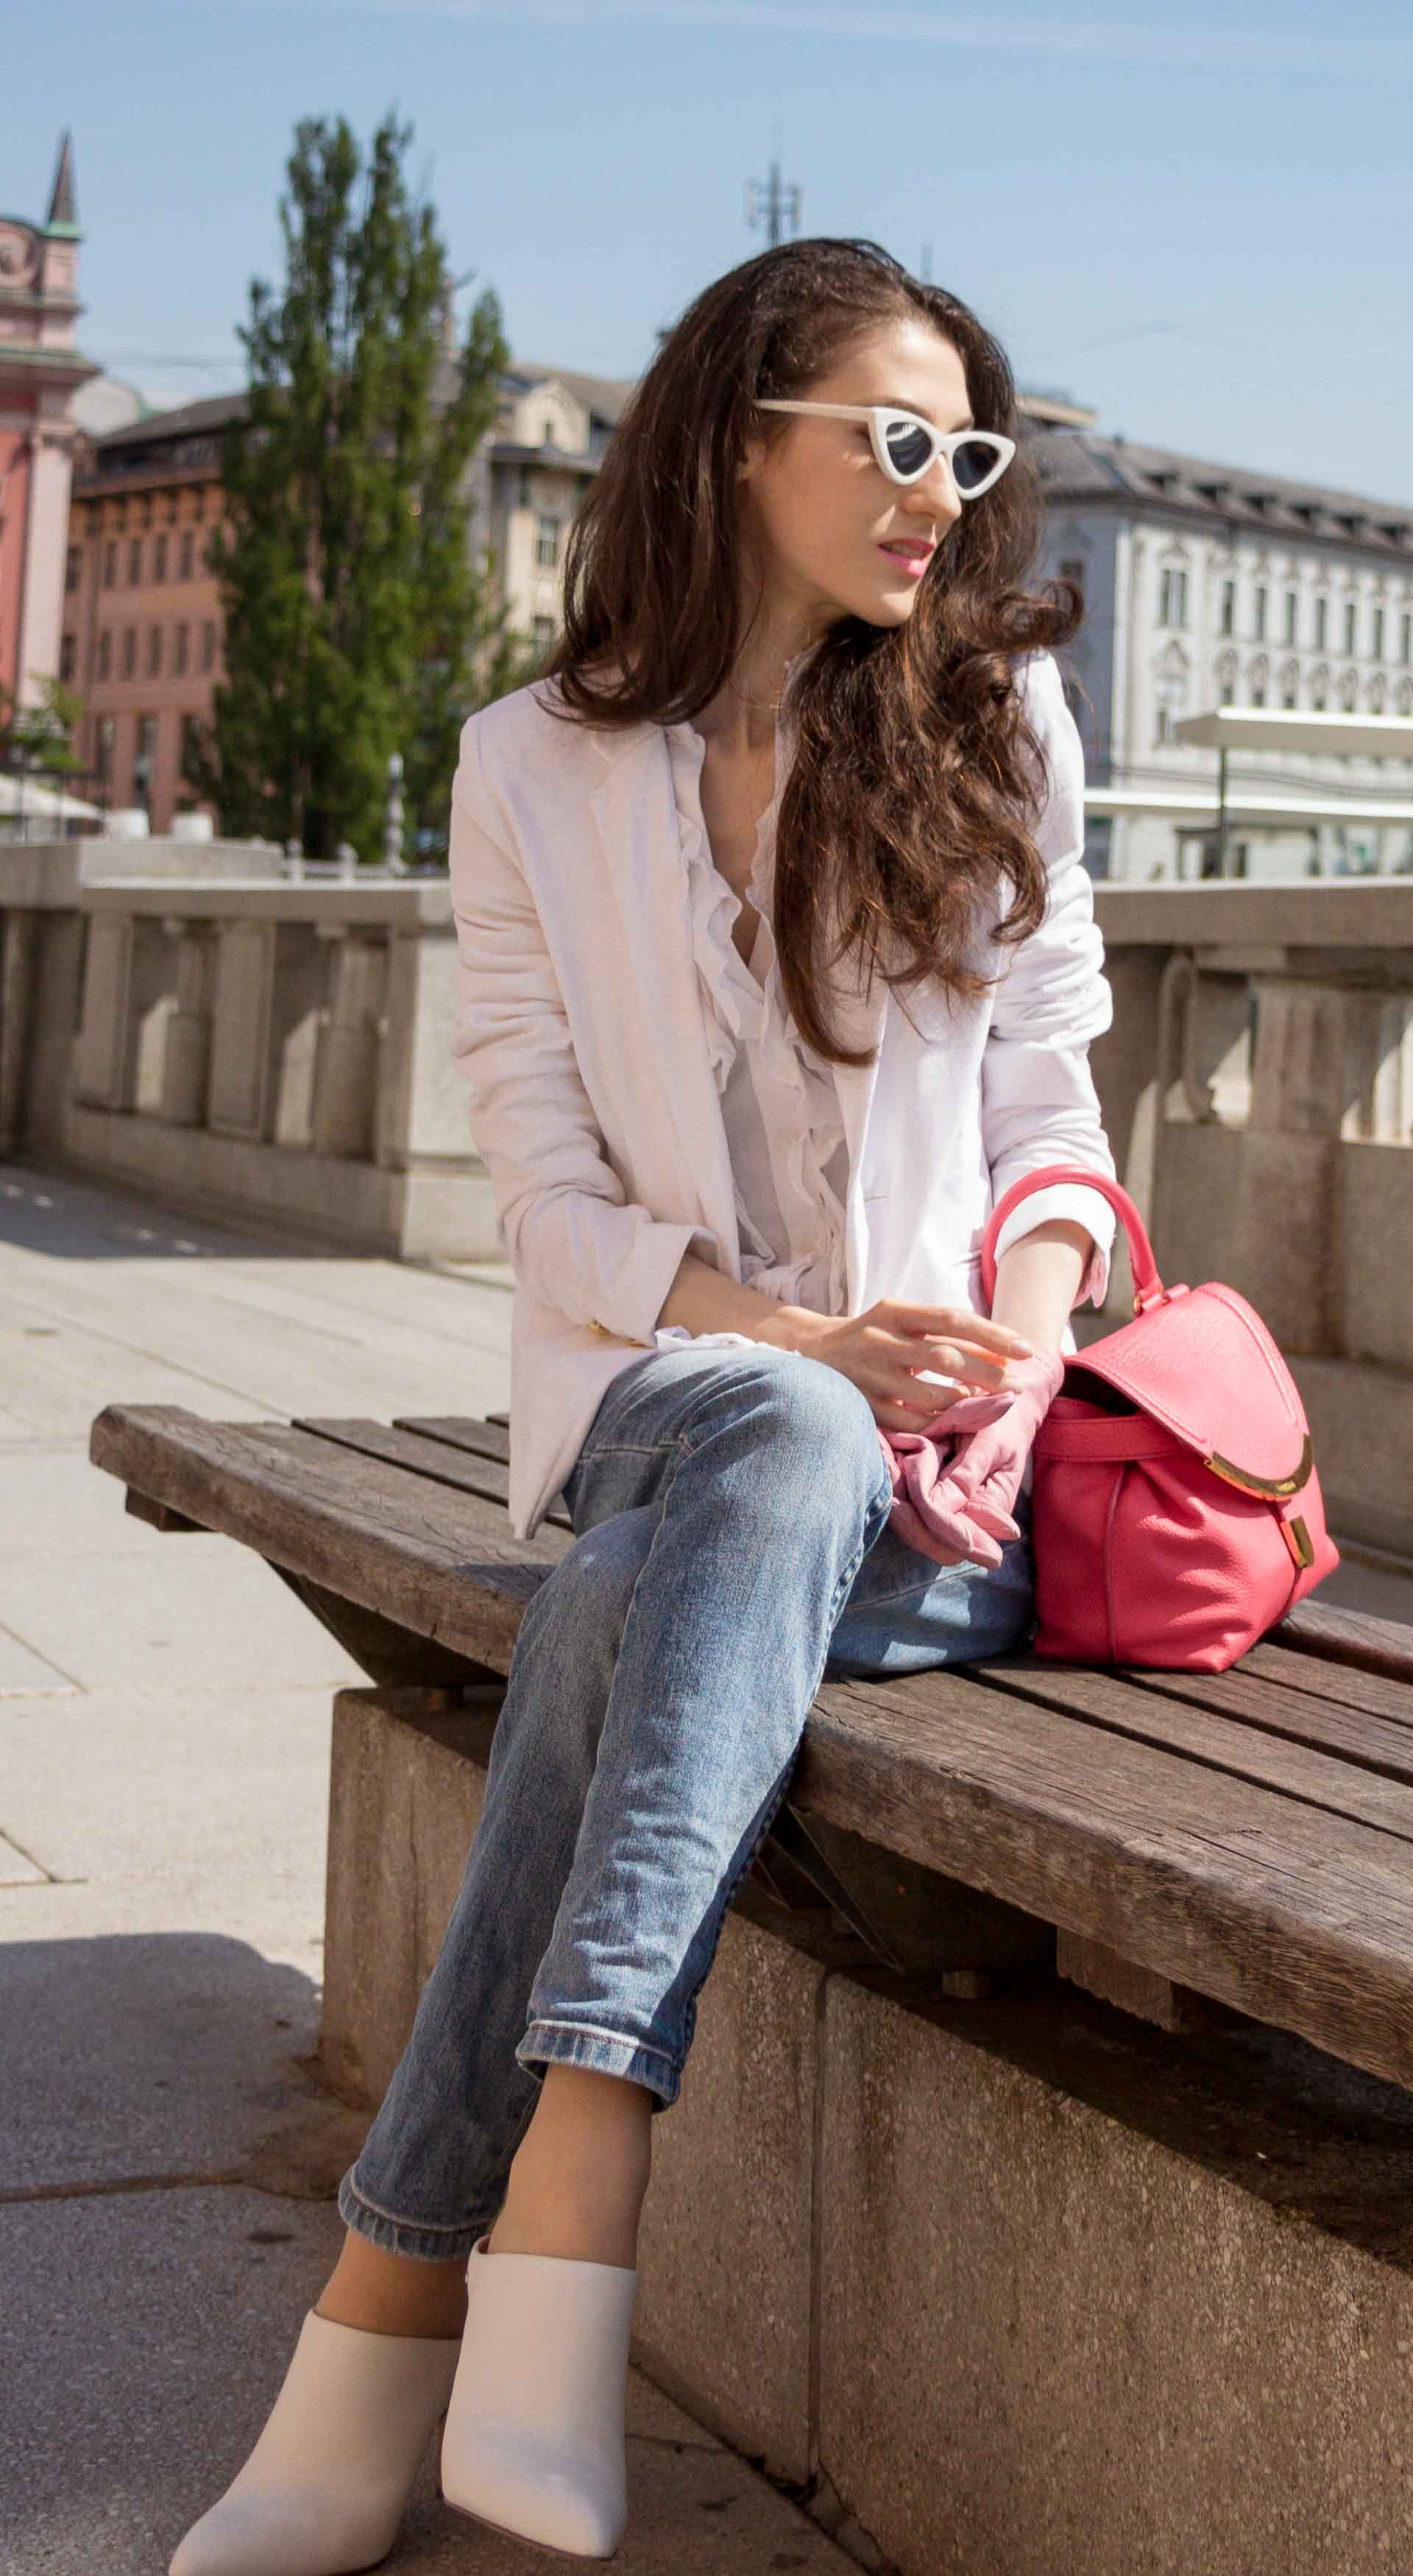 Veronika Lipar Fashion Blogger of Brunette from Wall Street wearing white mules, blue A.P.C. mom jeans, white fringe blouse, white blazer, pink gloves, pink top handle bag and Le Specs Lolita white cat eye sunglasses while sitting on the bench